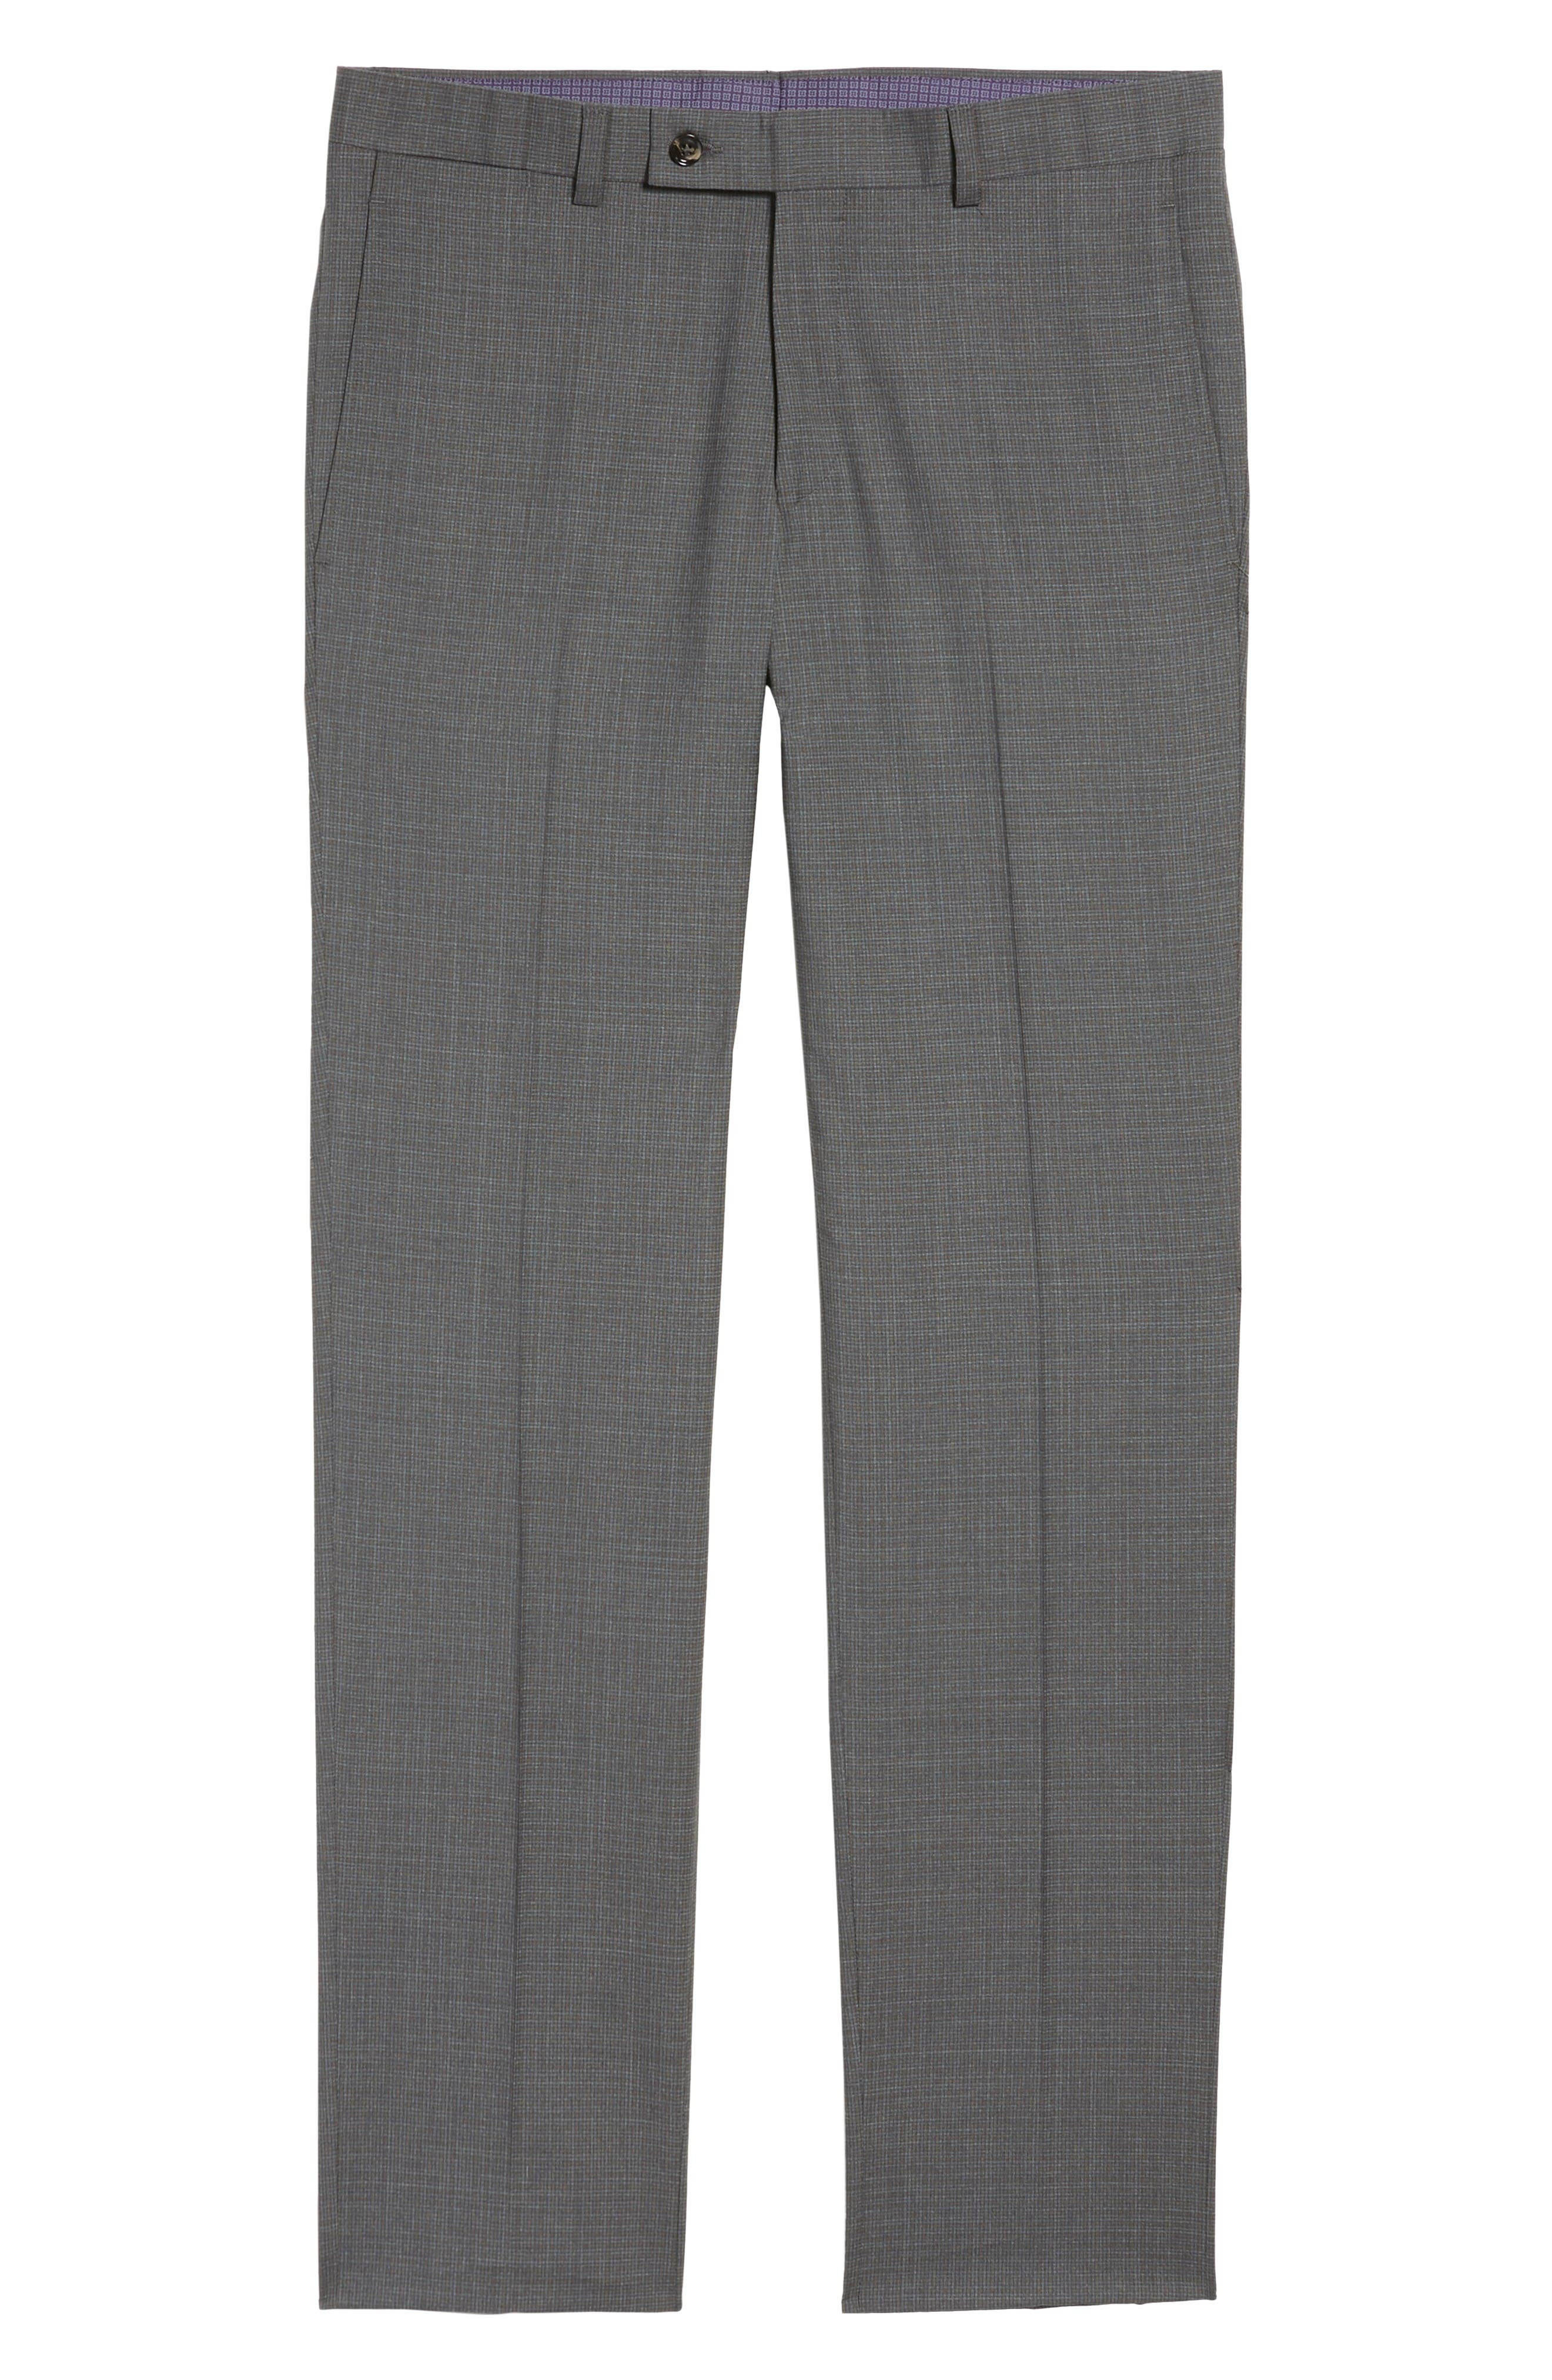 Jefferson Flat Front Wool Trousers,                             Alternate thumbnail 6, color,                             Grey